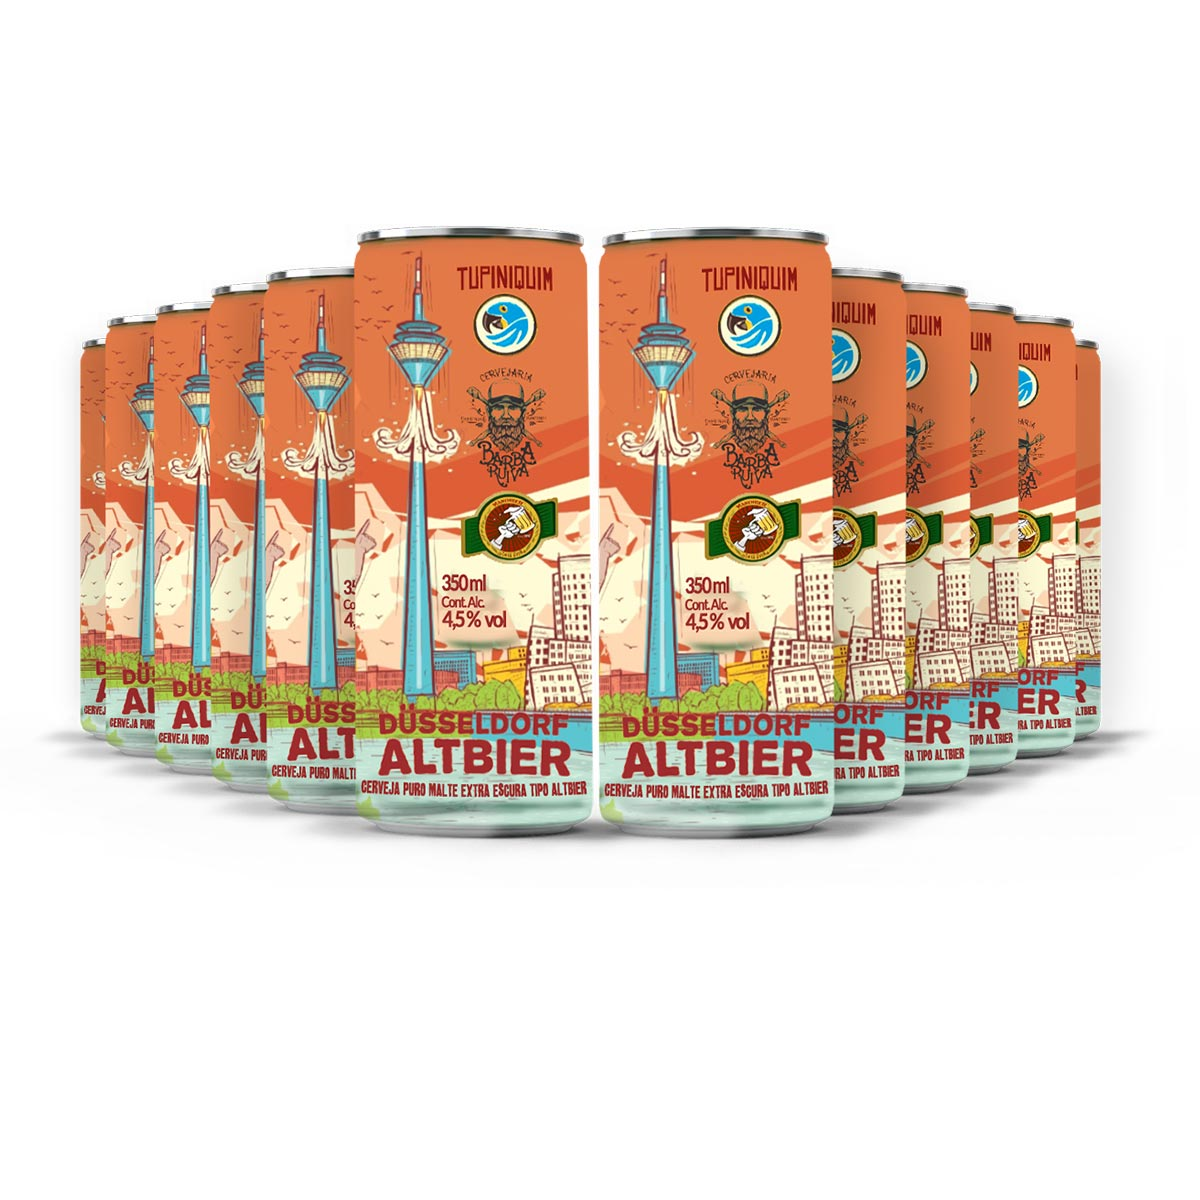 Pack Tupiniquim Altbier 12 cervejas 350ml